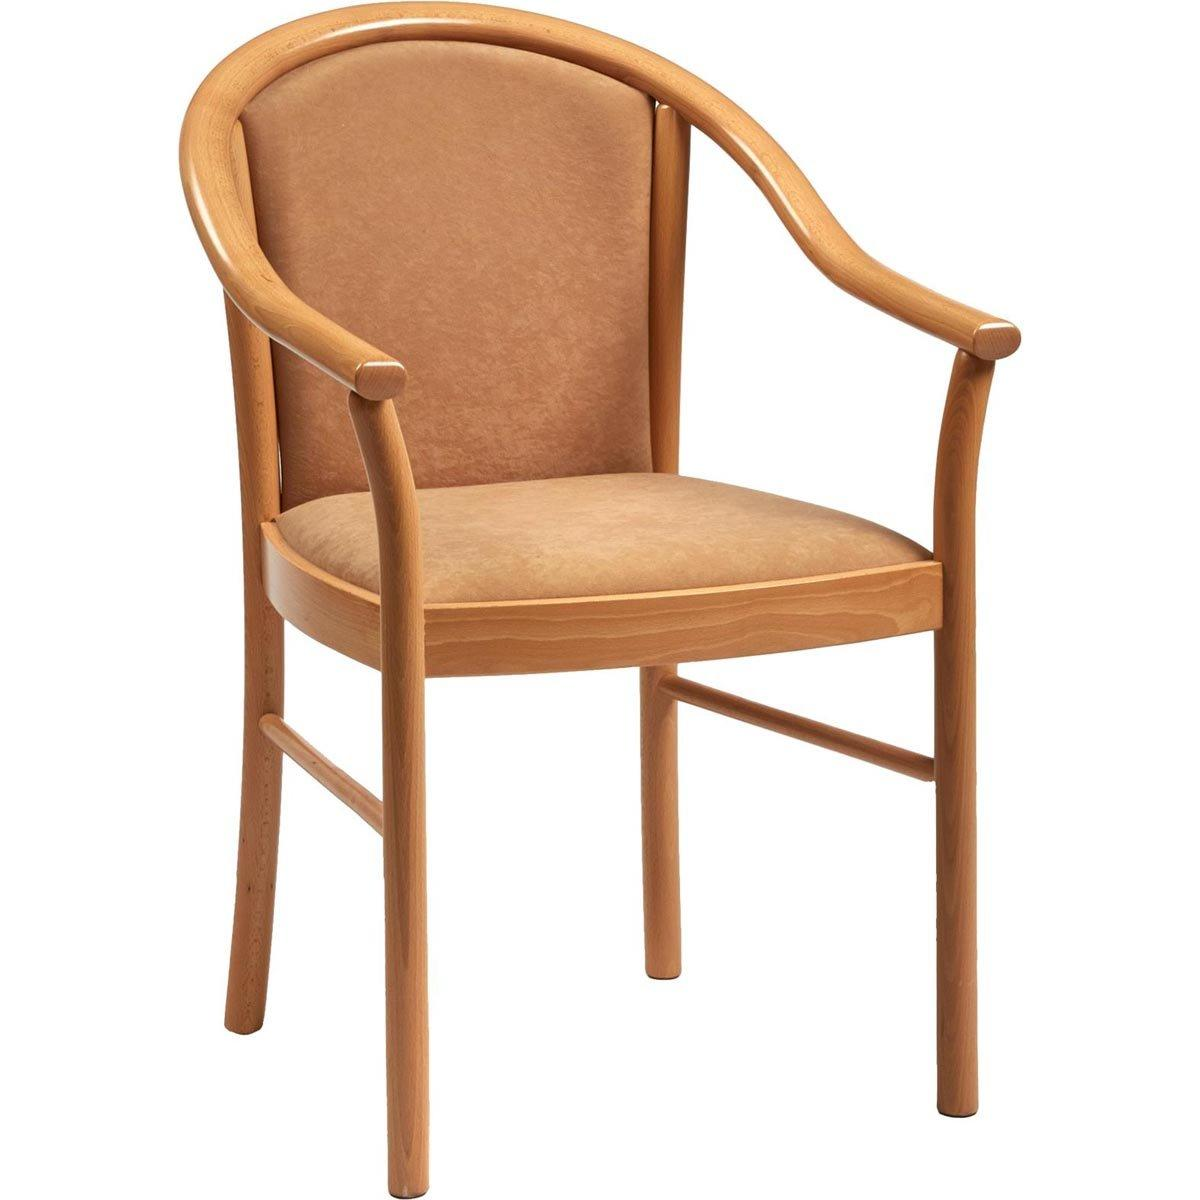 Orsa Dining Chairs